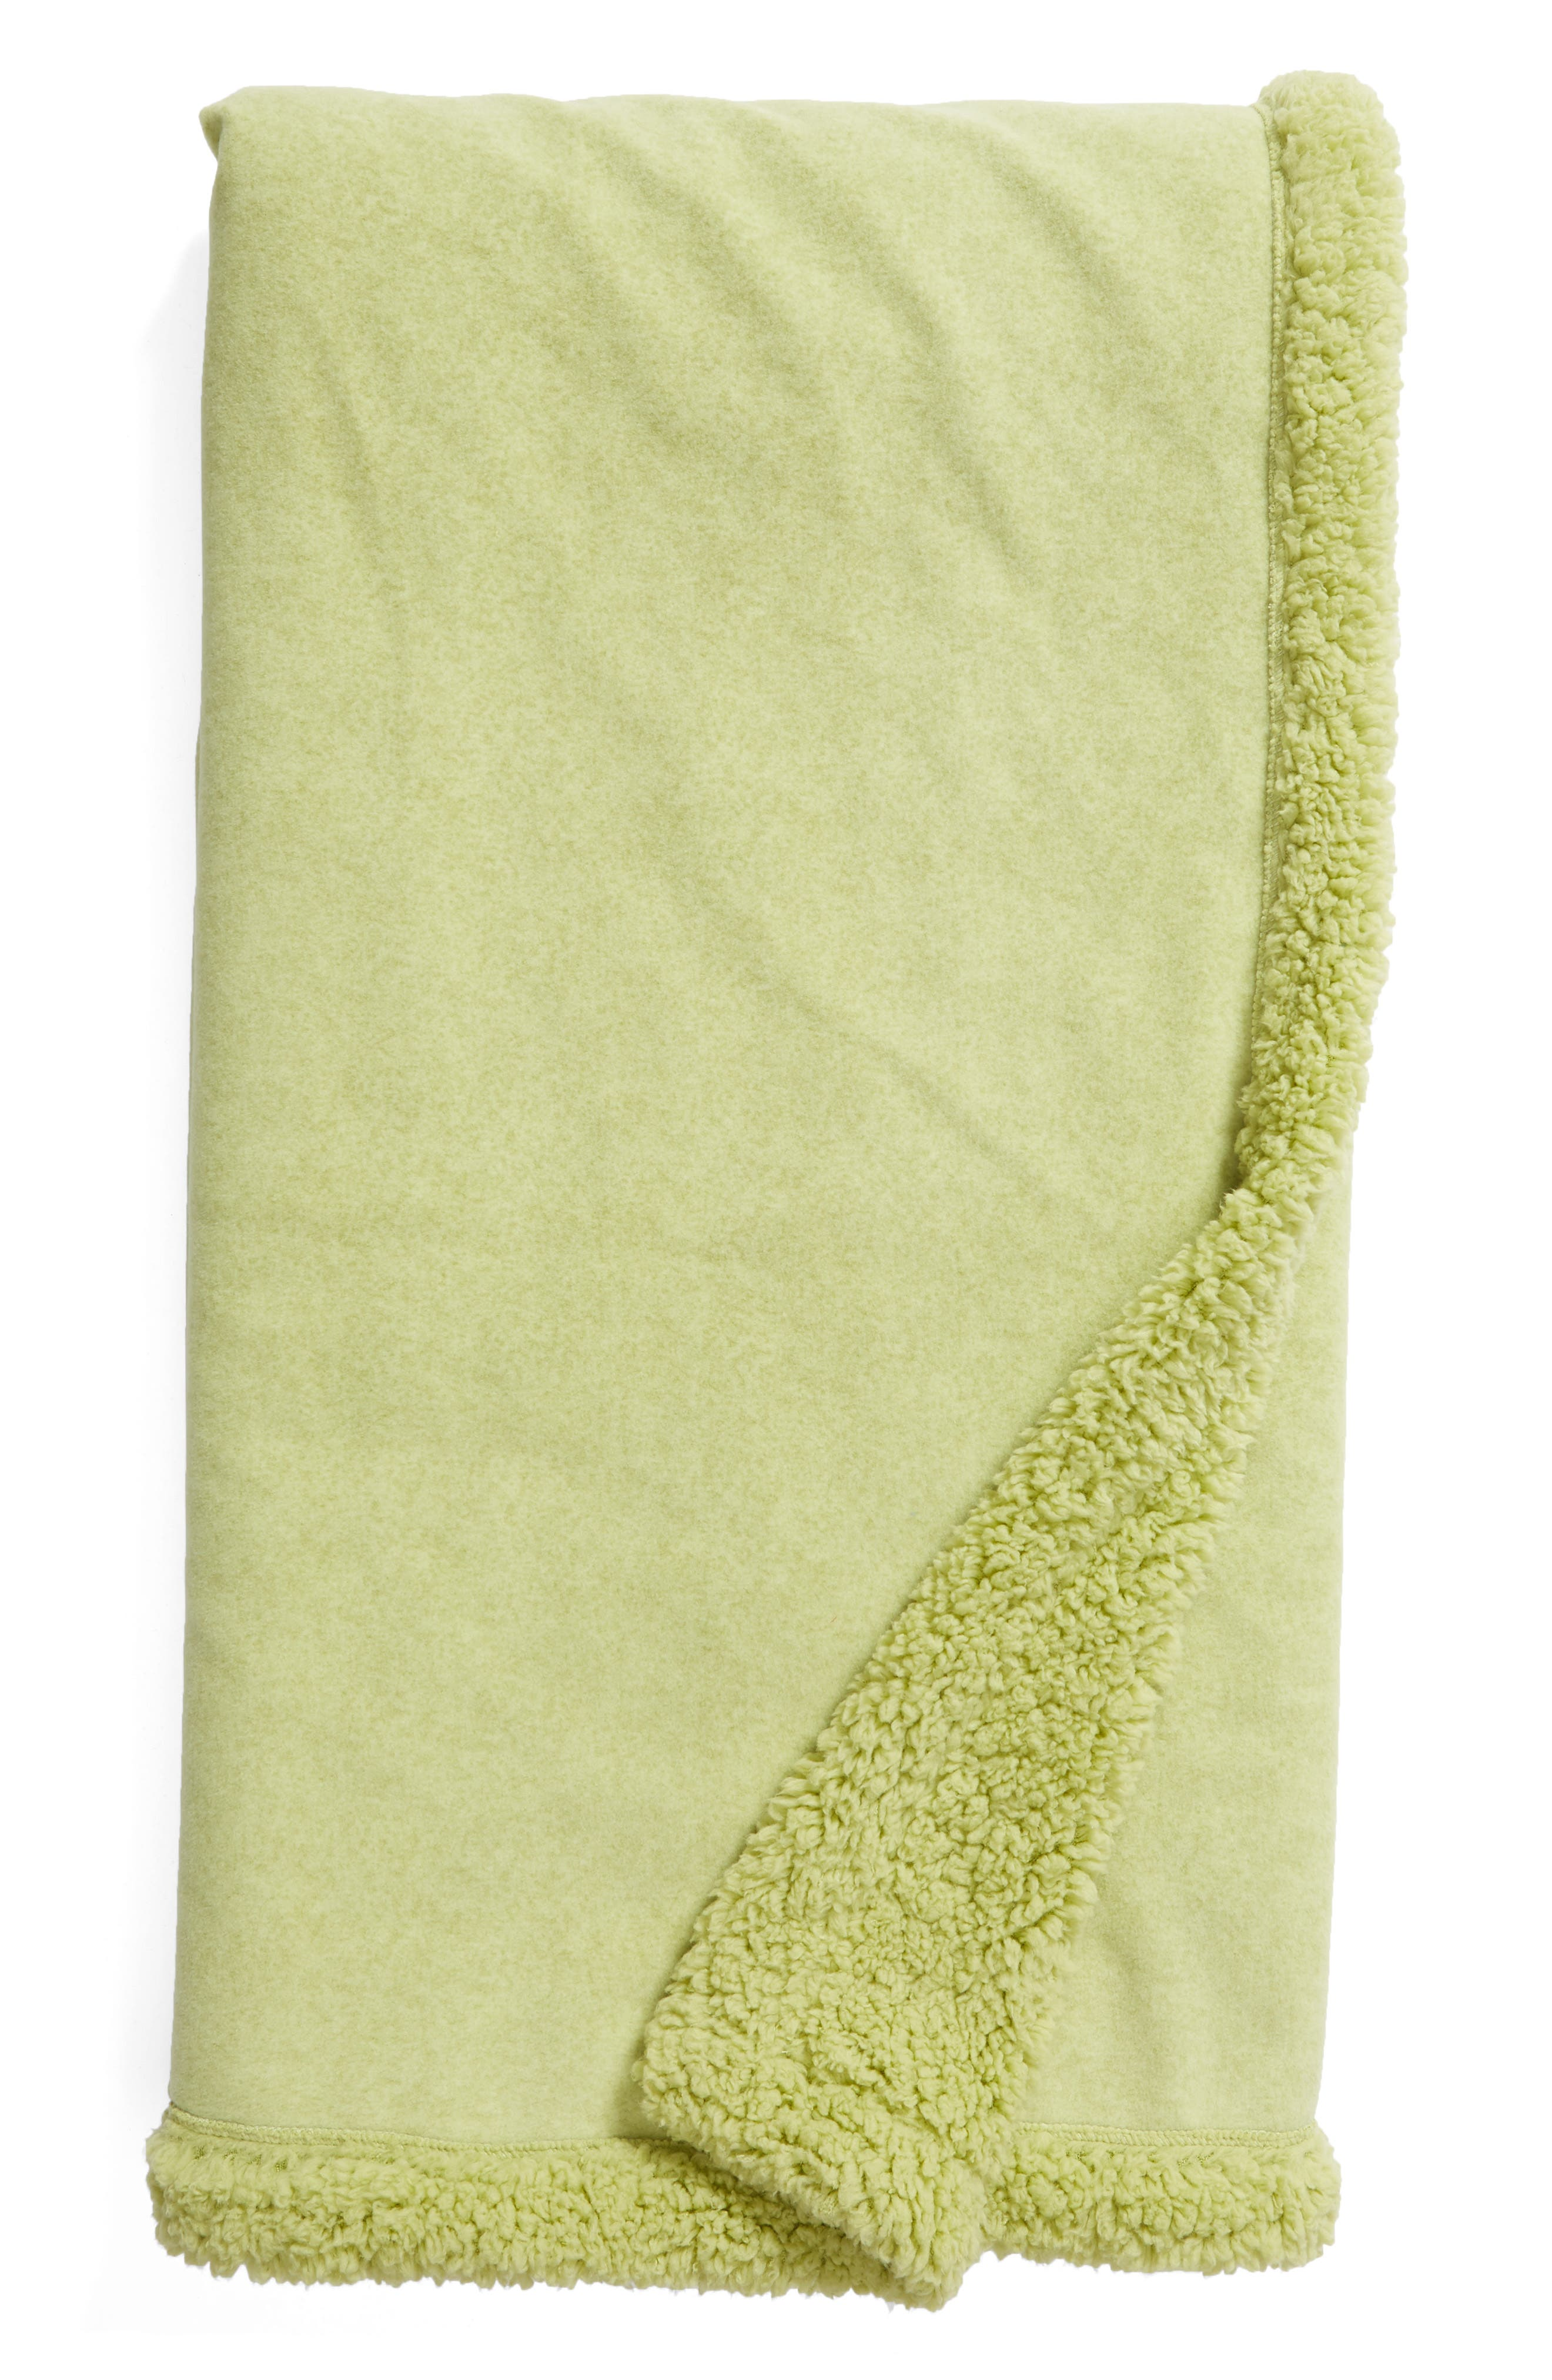 NORDSTROM AT HOME, Faux Fur Throw, Main thumbnail 1, color, OLIVE NILE